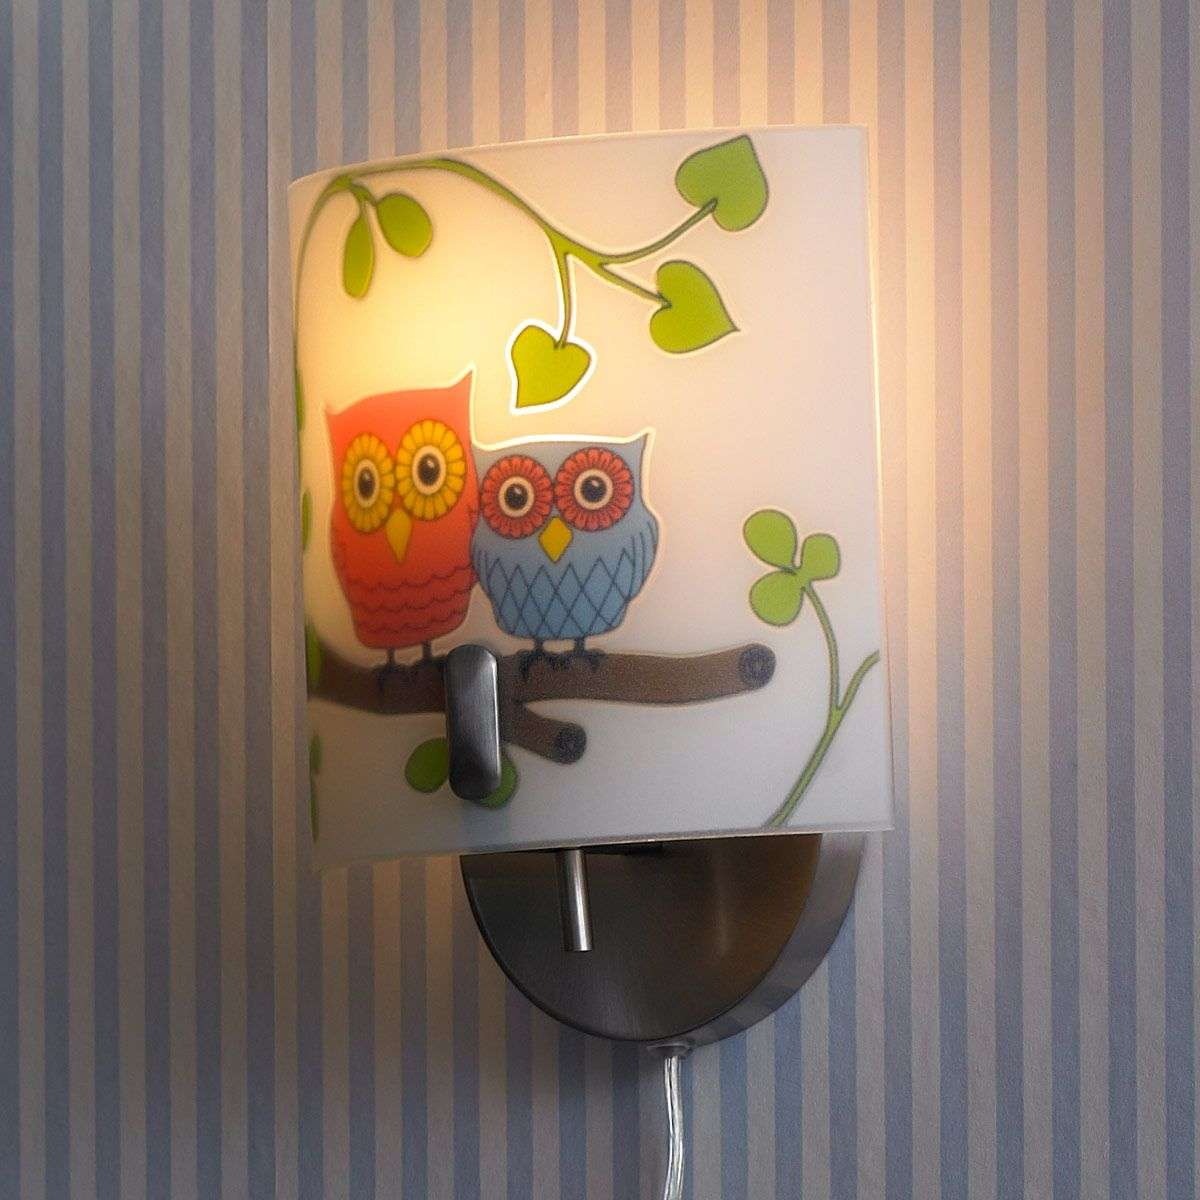 Child friendly wall light ugglarp owl motif lights child friendly wall light ugglarp owl motif 6505546 31 aloadofball Image collections